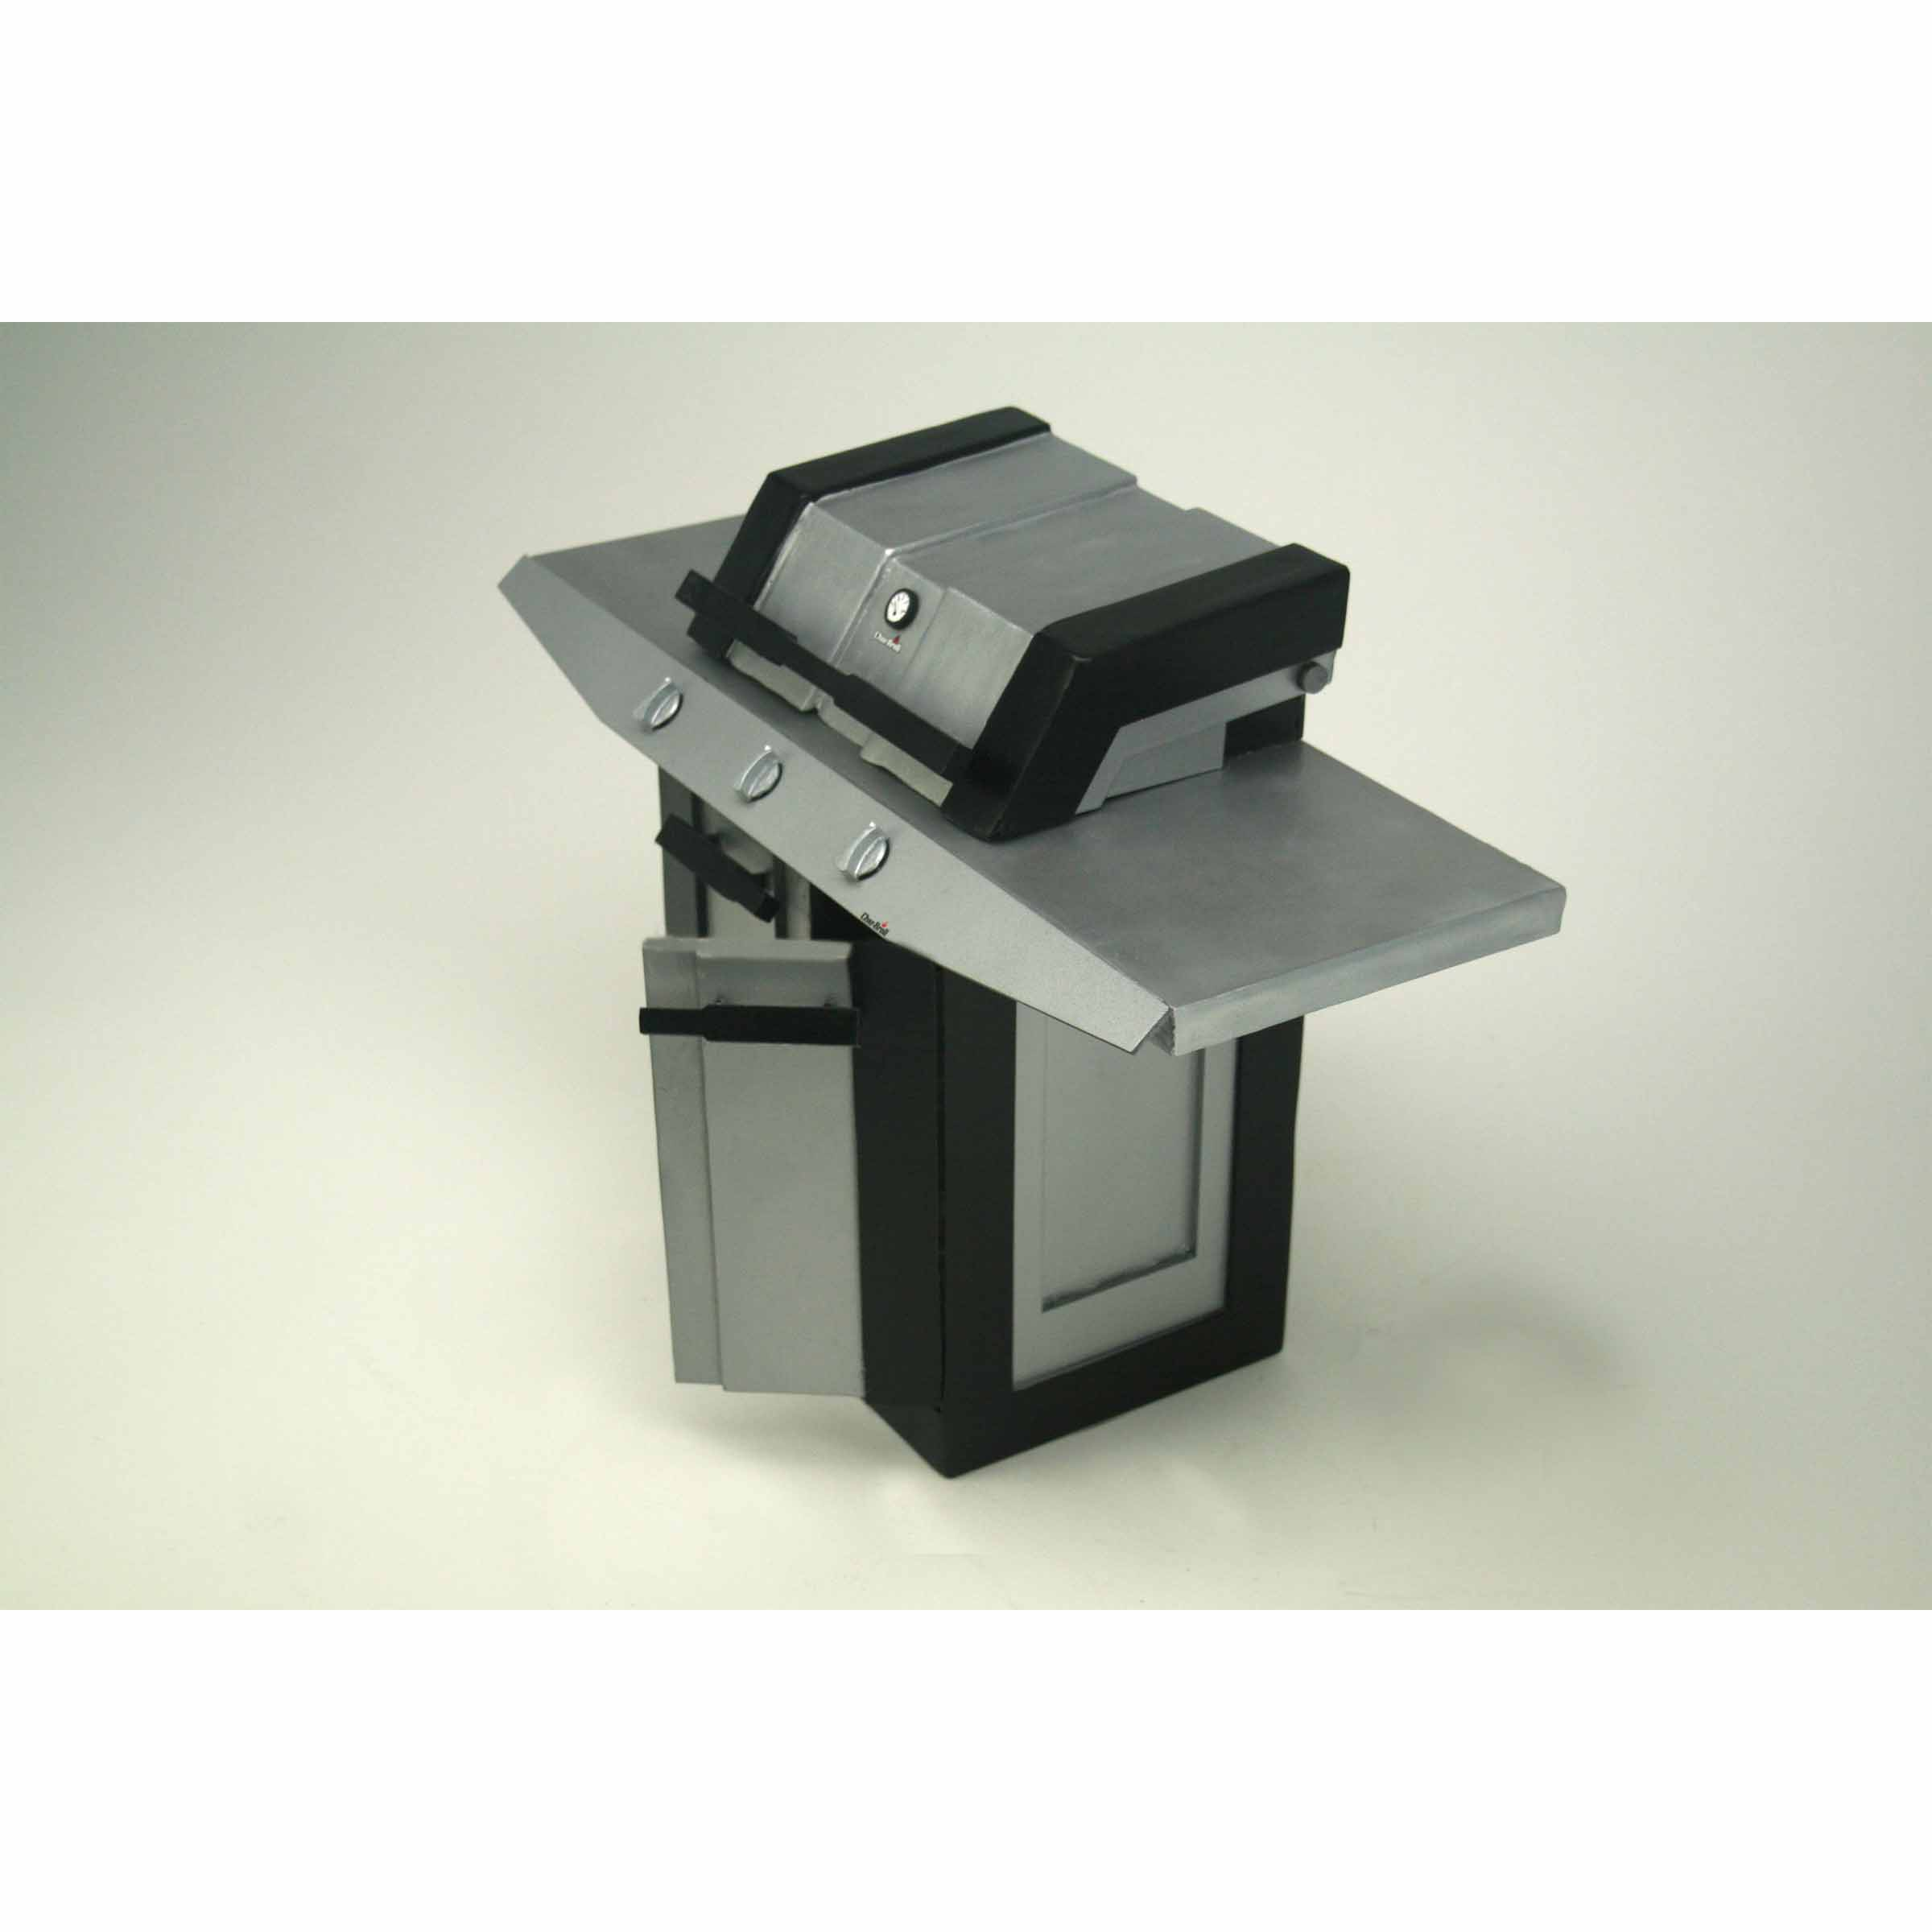 Char-Broil - A redesign of grills to appear as more rugged and durable.